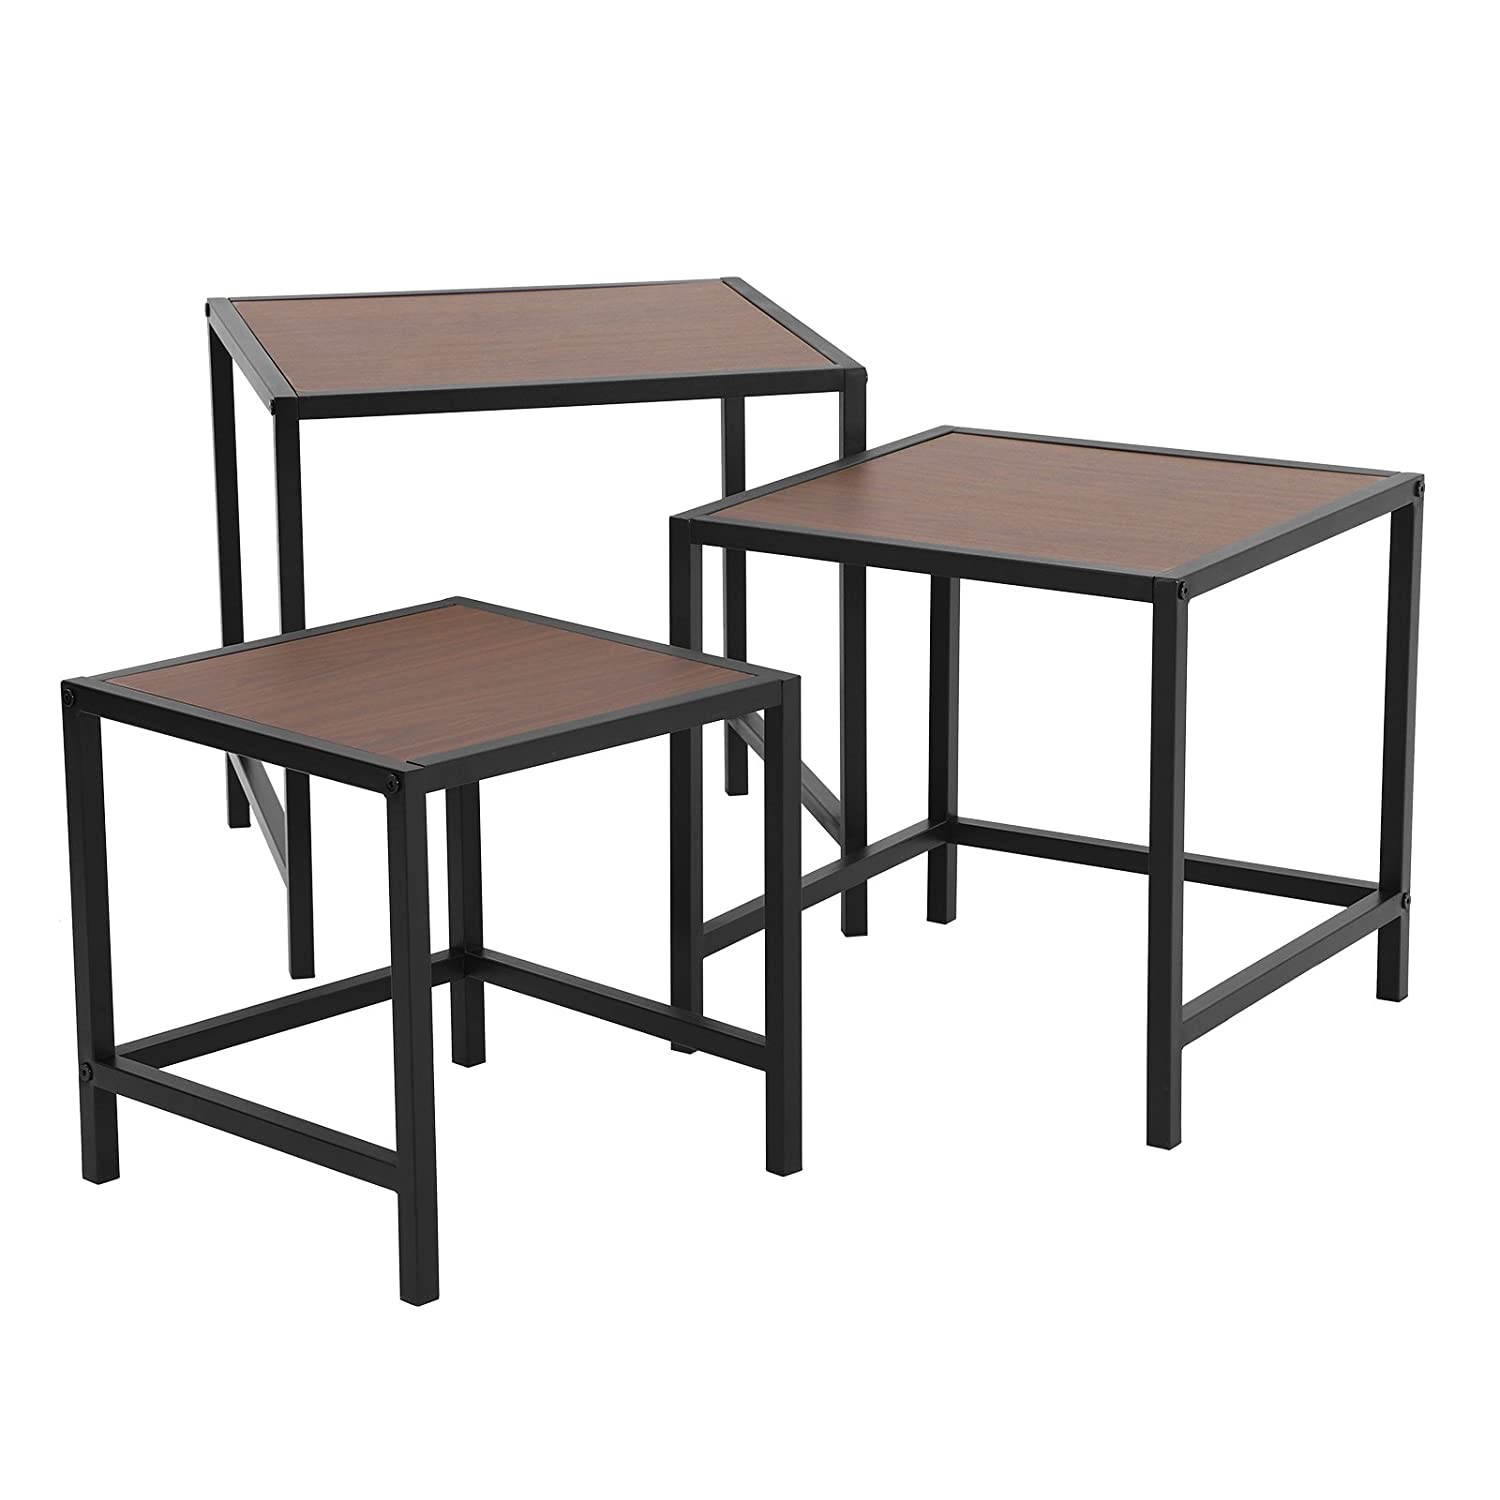 Amazon com songmics nesting coffee table set of 3 for living room end side tables nightstand modern decor for small space sturdy and easy assembly